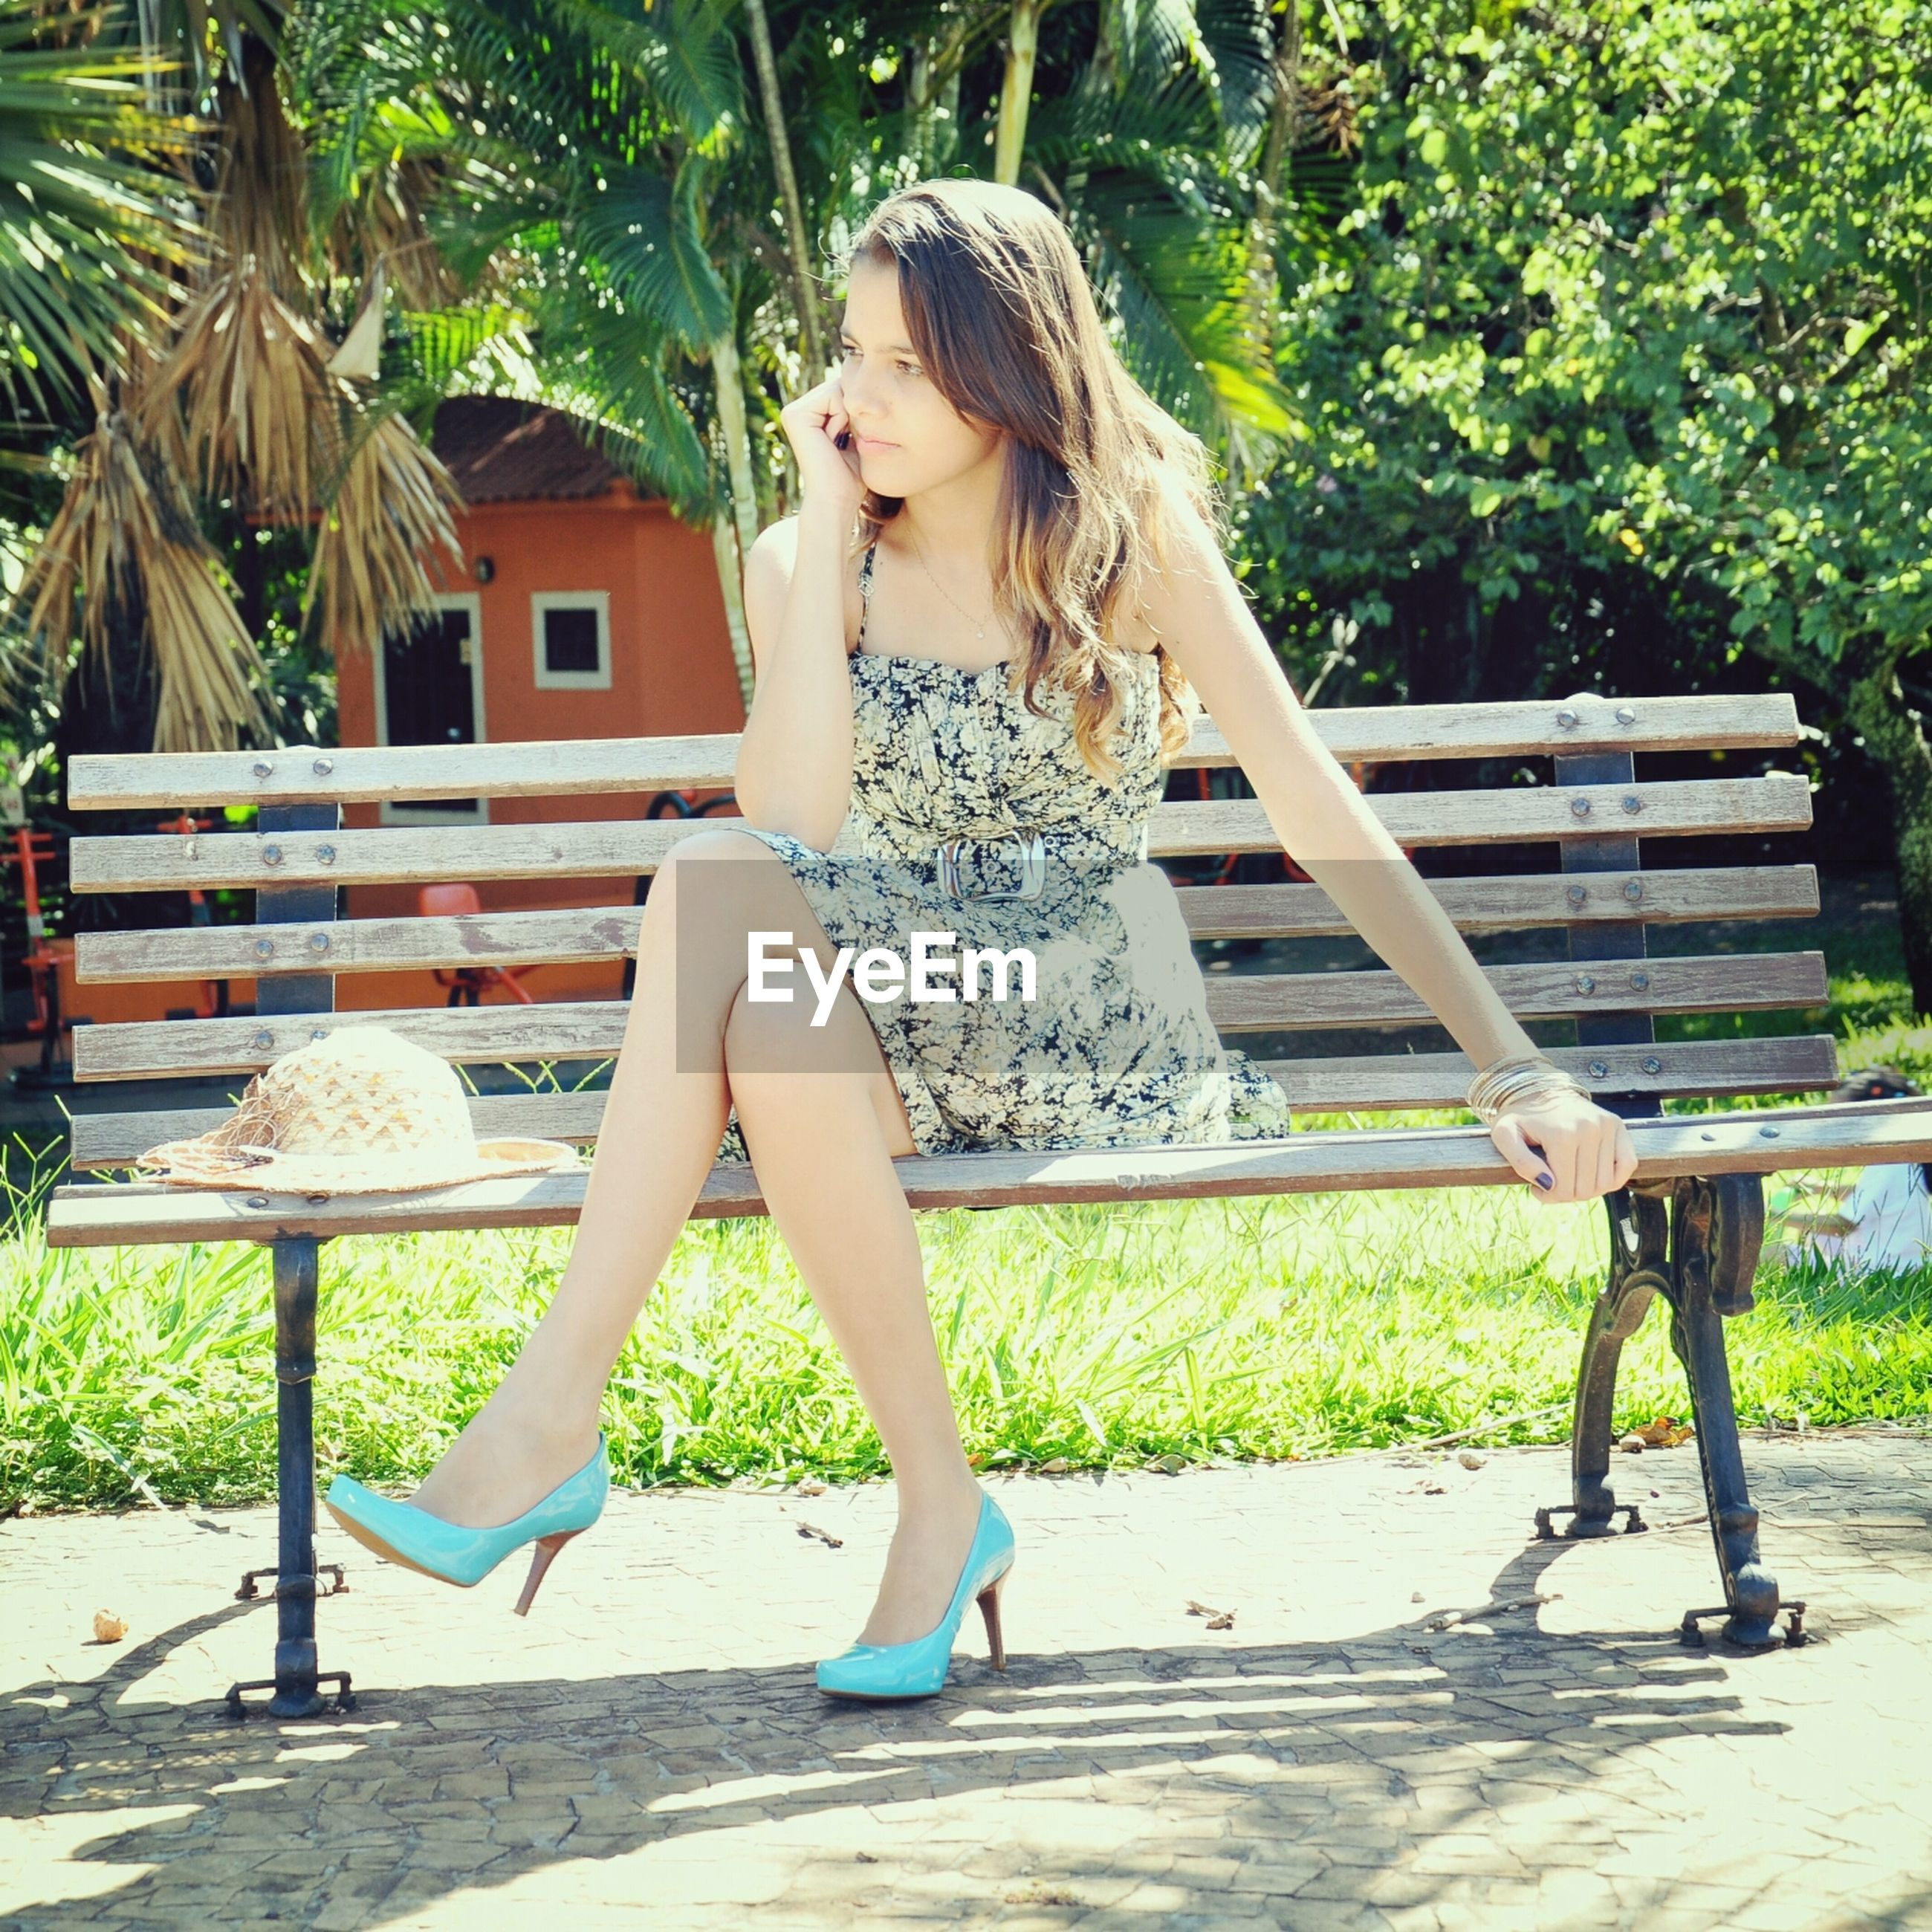 young adult, lifestyles, full length, person, young women, leisure activity, tree, casual clothing, sitting, relaxation, long hair, park - man made space, sunlight, standing, front view, dress, bench